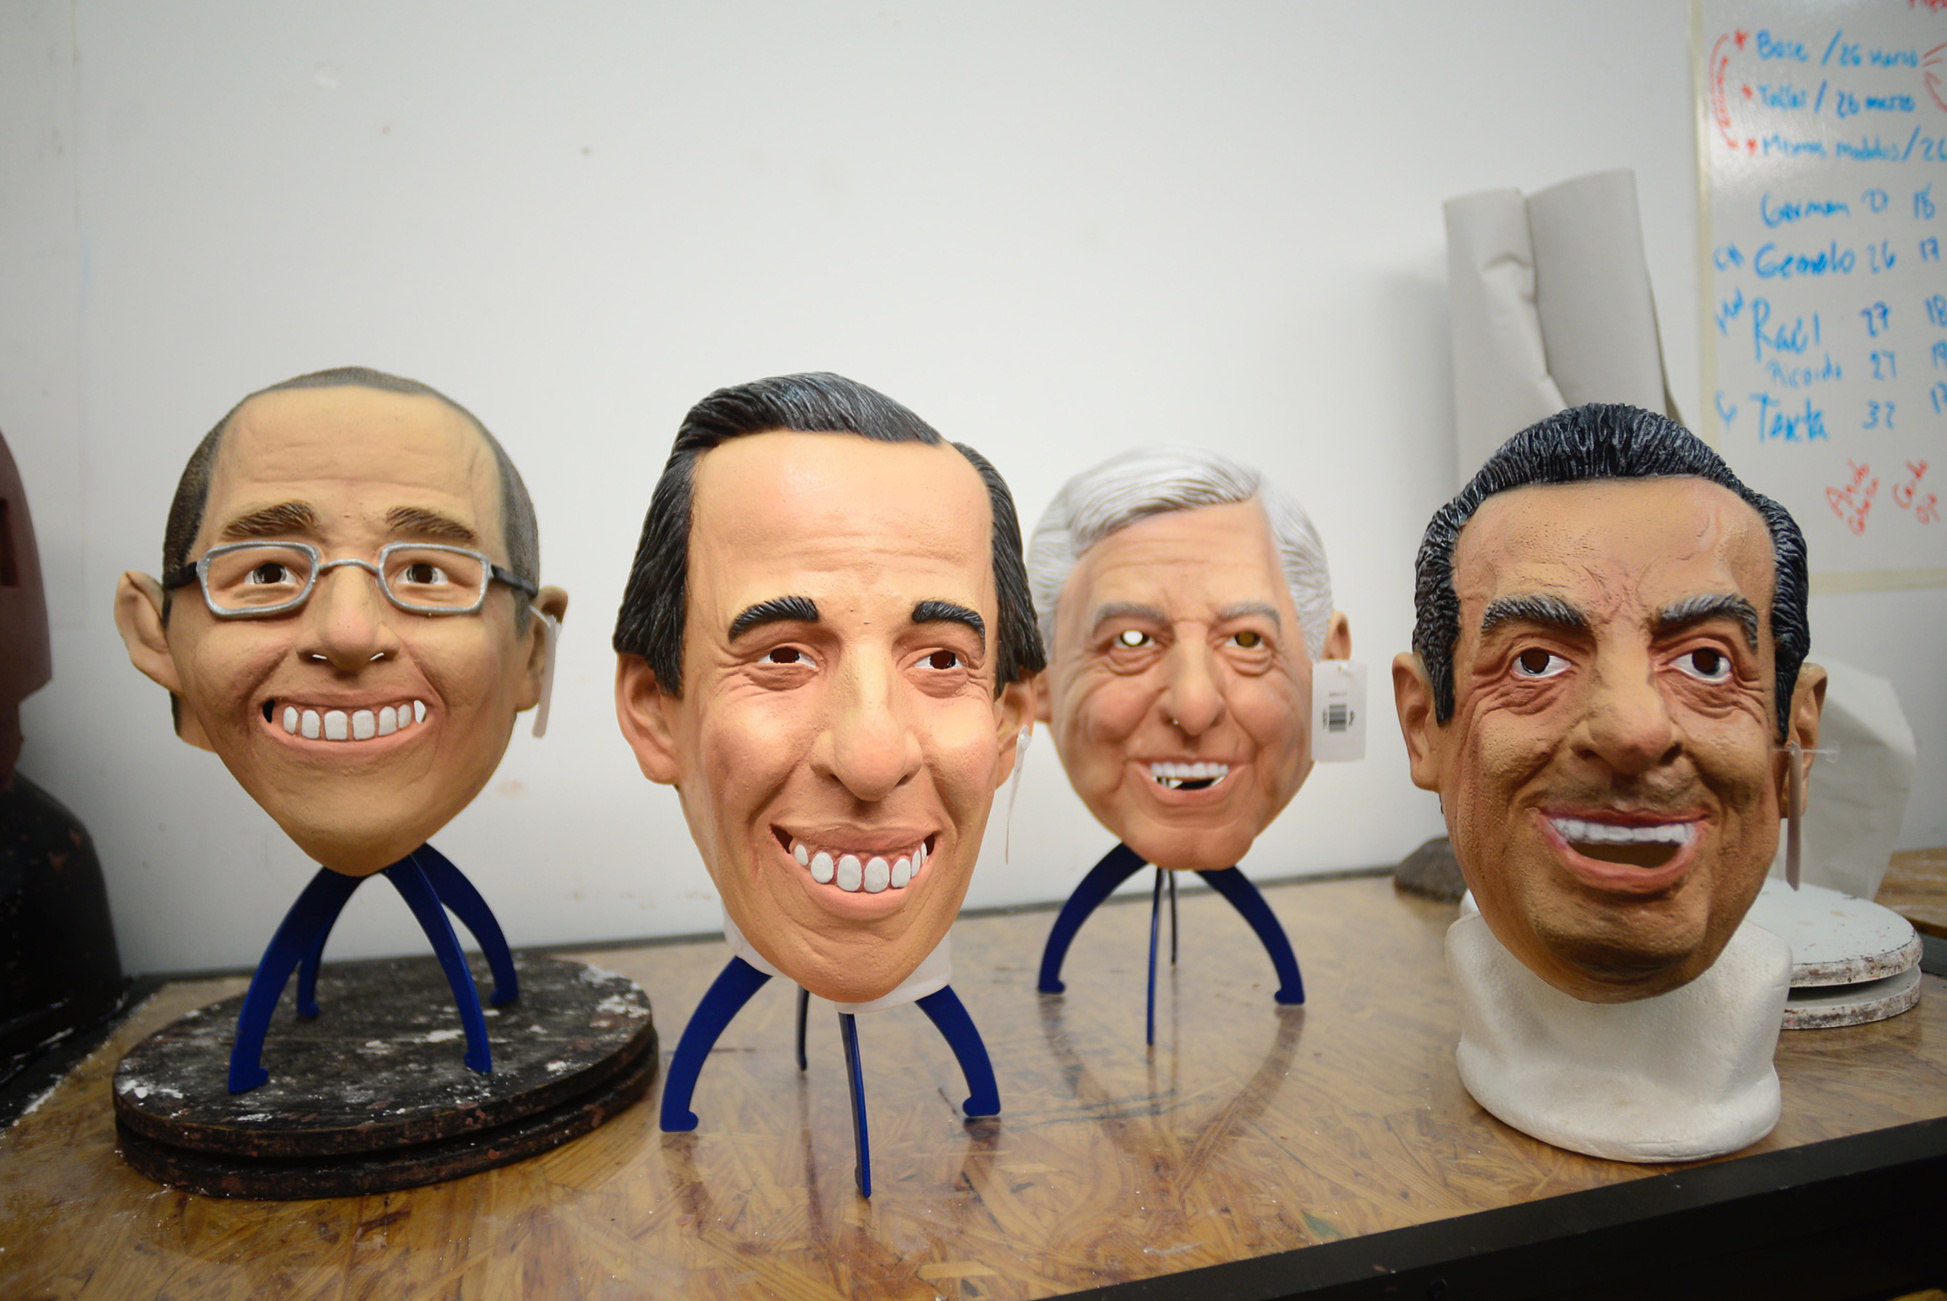 THE MASK OF MEXICAN POLITICS